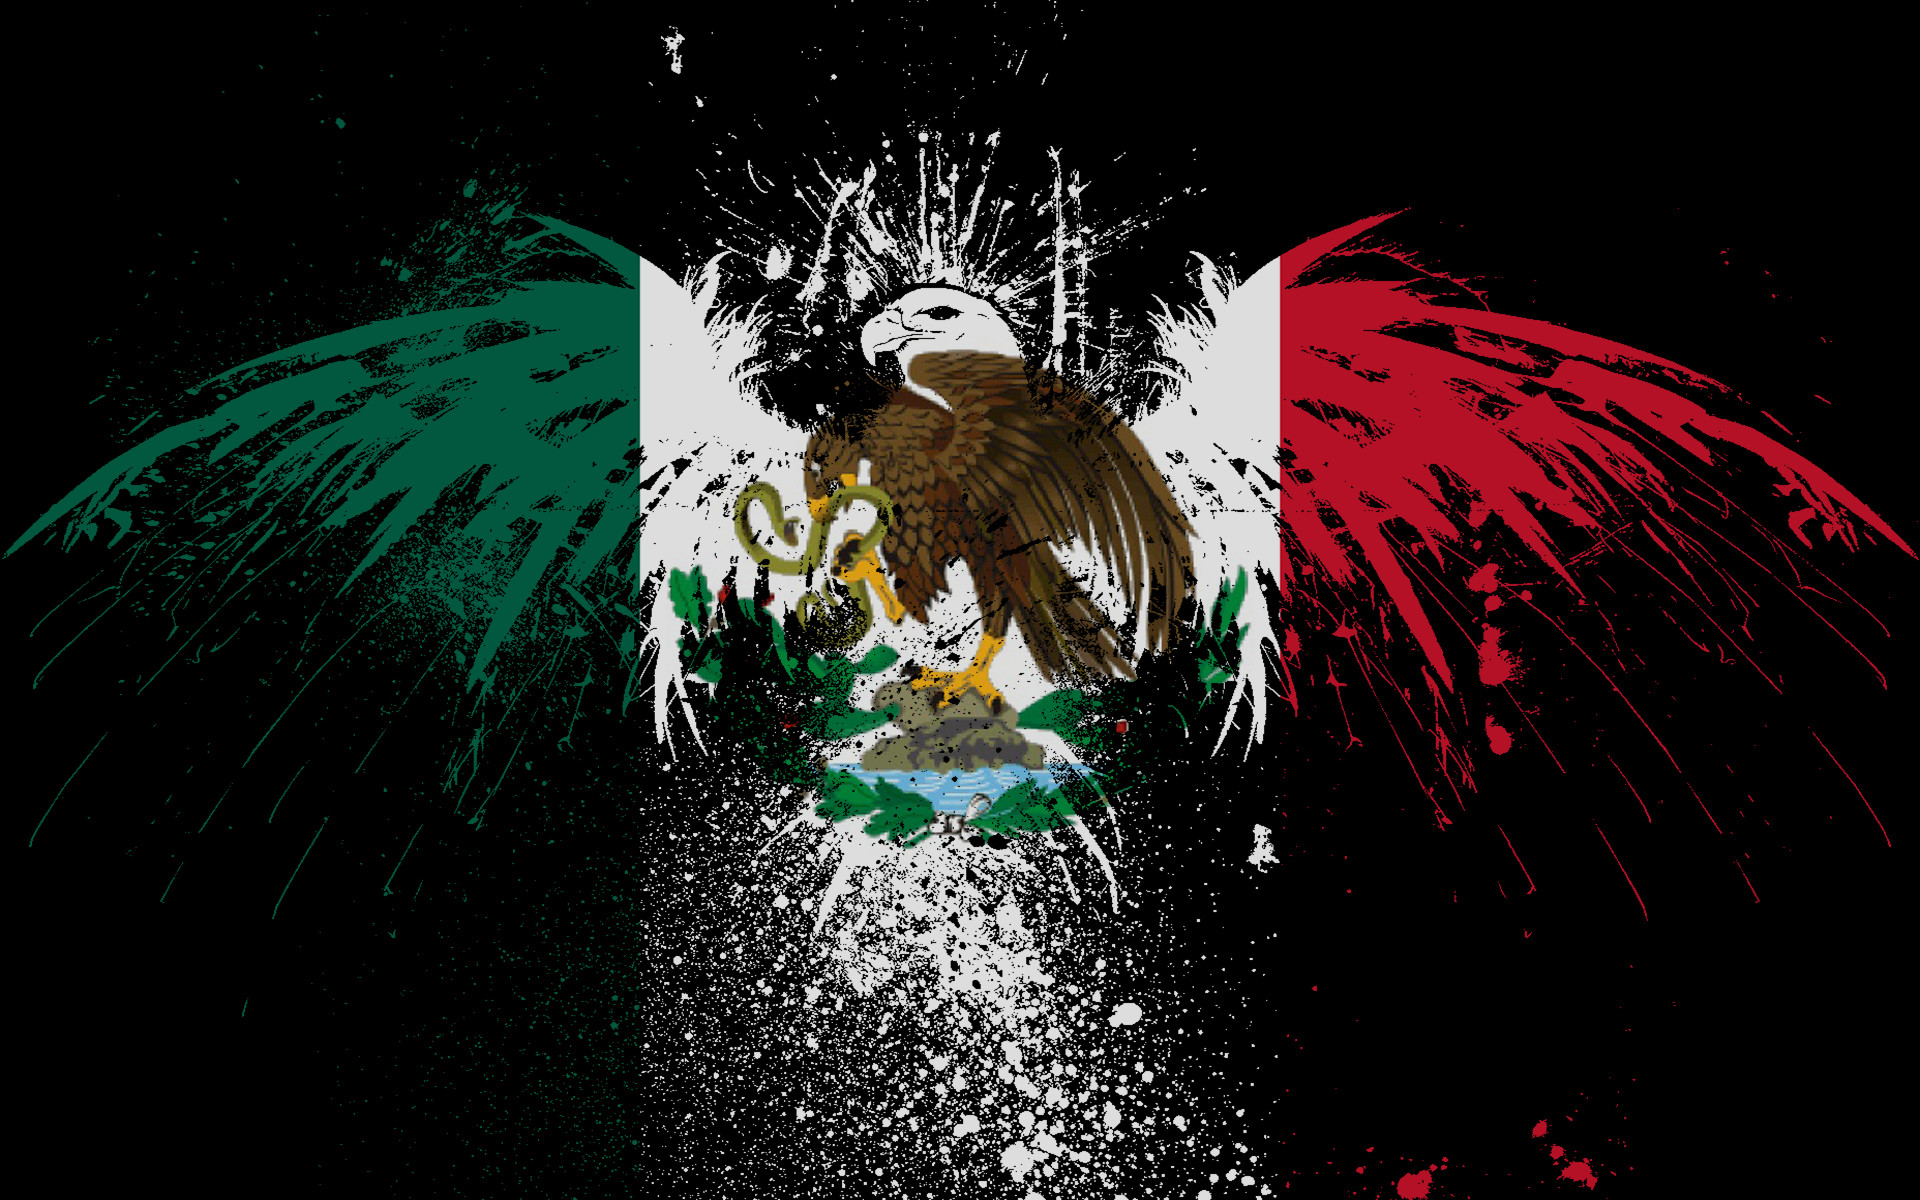 Res: 1920x1200, Mexico, Logos, Eagle, Snake, Green, Red, Dark Background wallpaper thumb